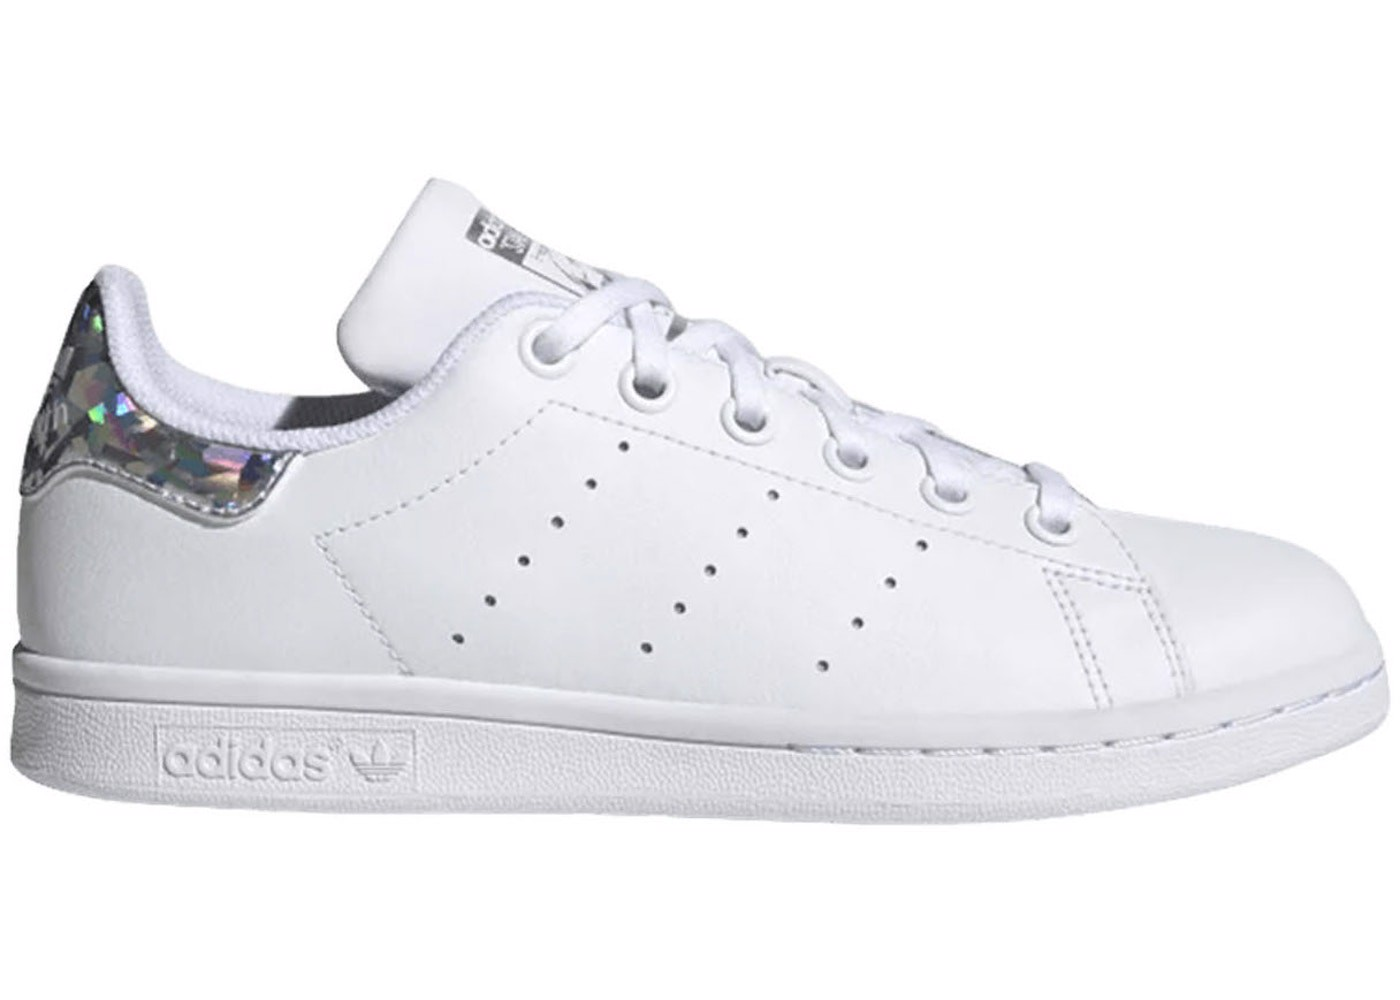 Adidas Stan Smith Sparkly Heel White EE8483